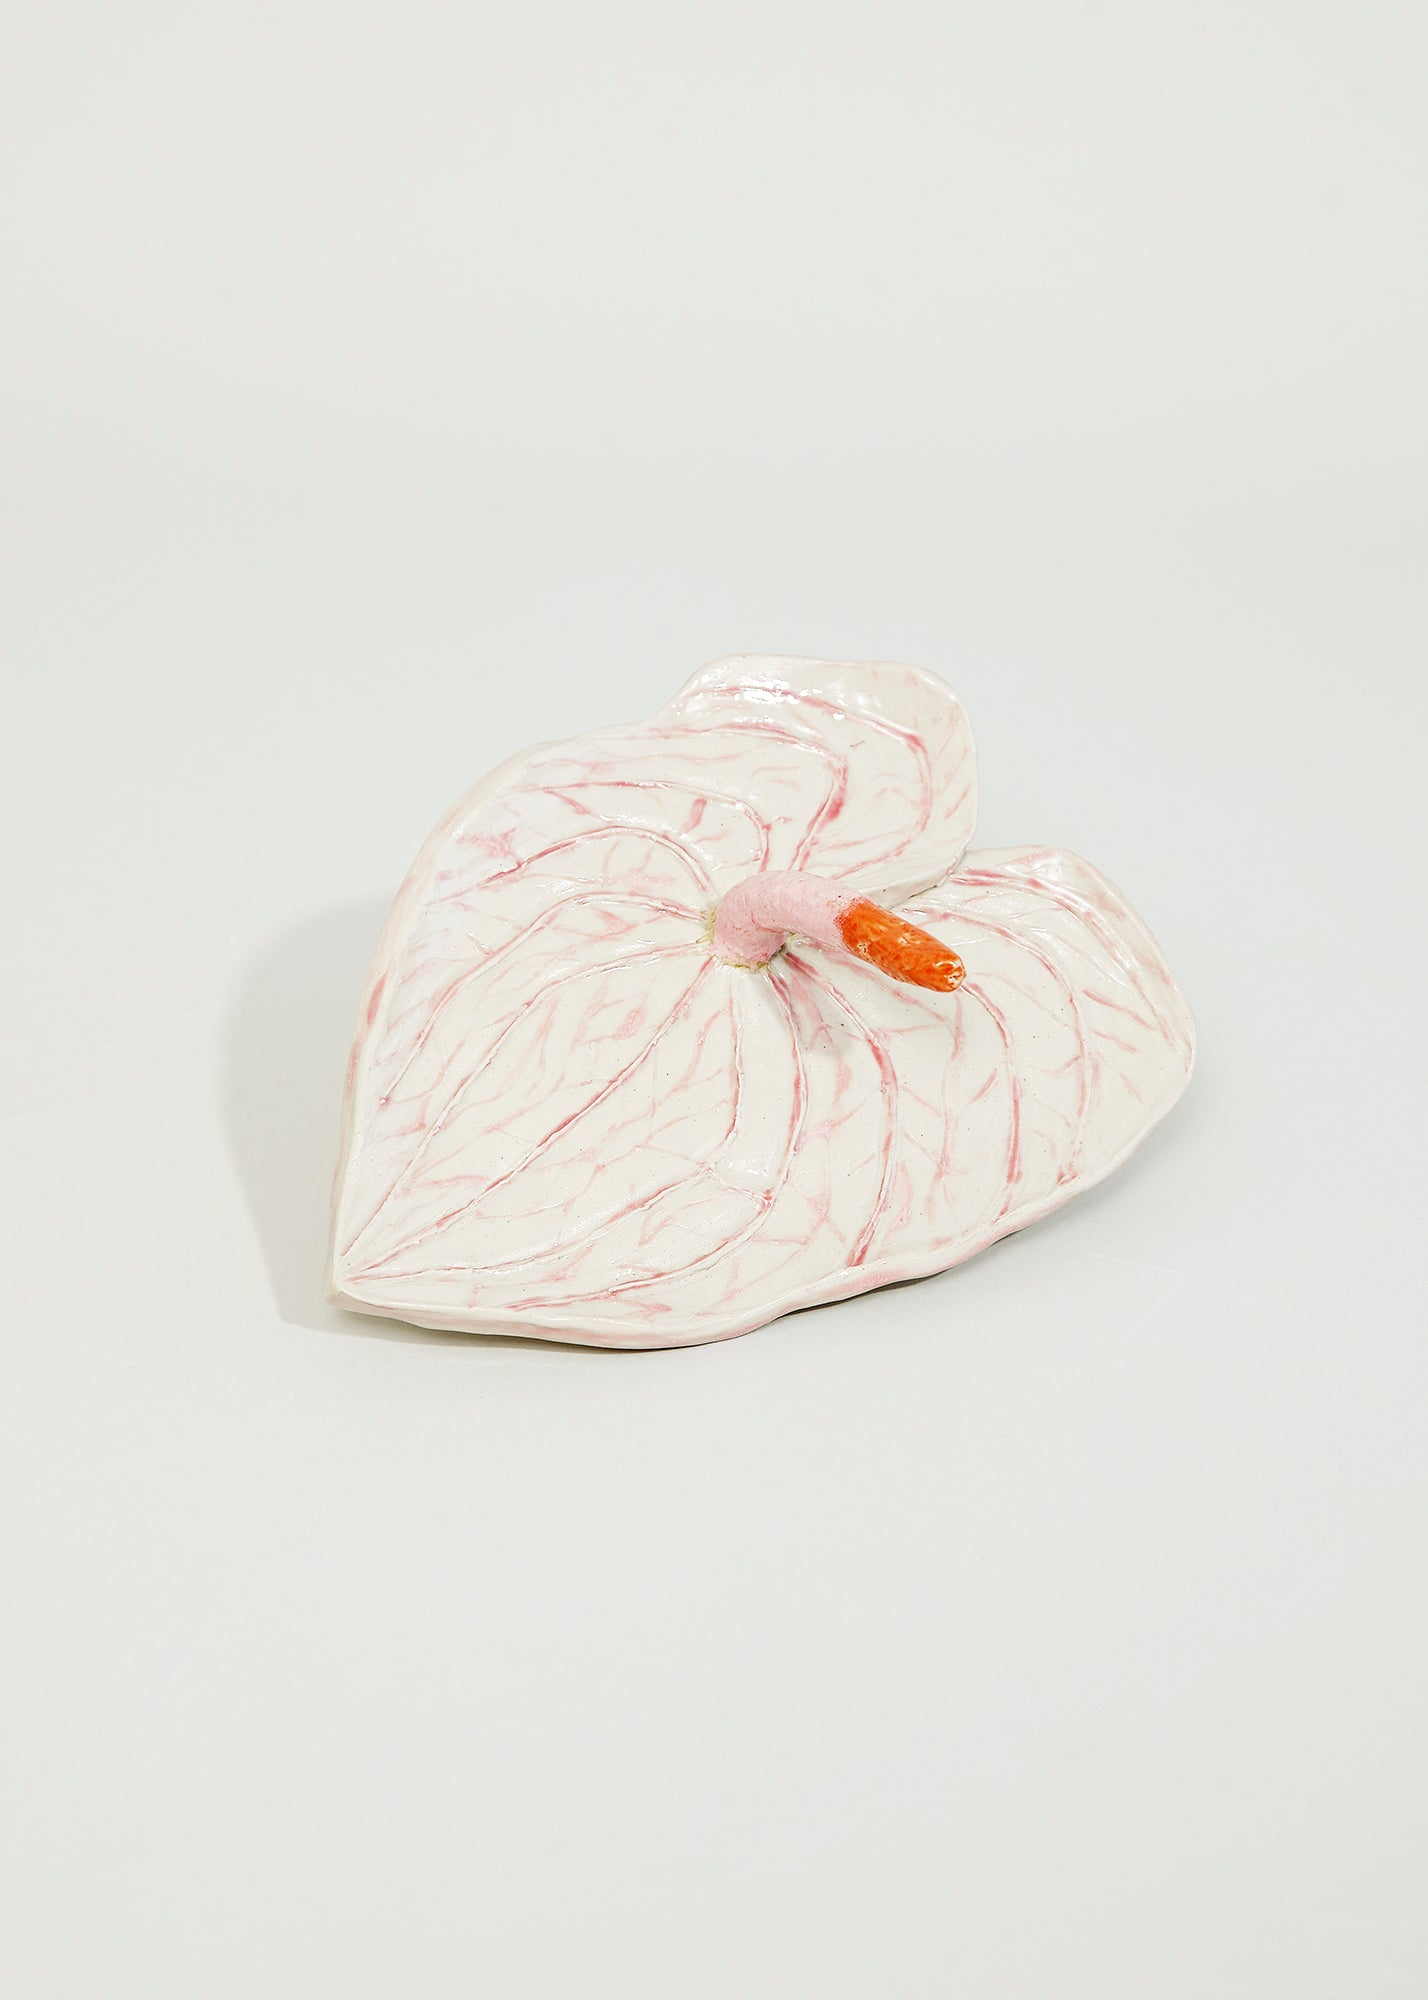 Anthurium Ceramic - Trine Tuxen Jewelry